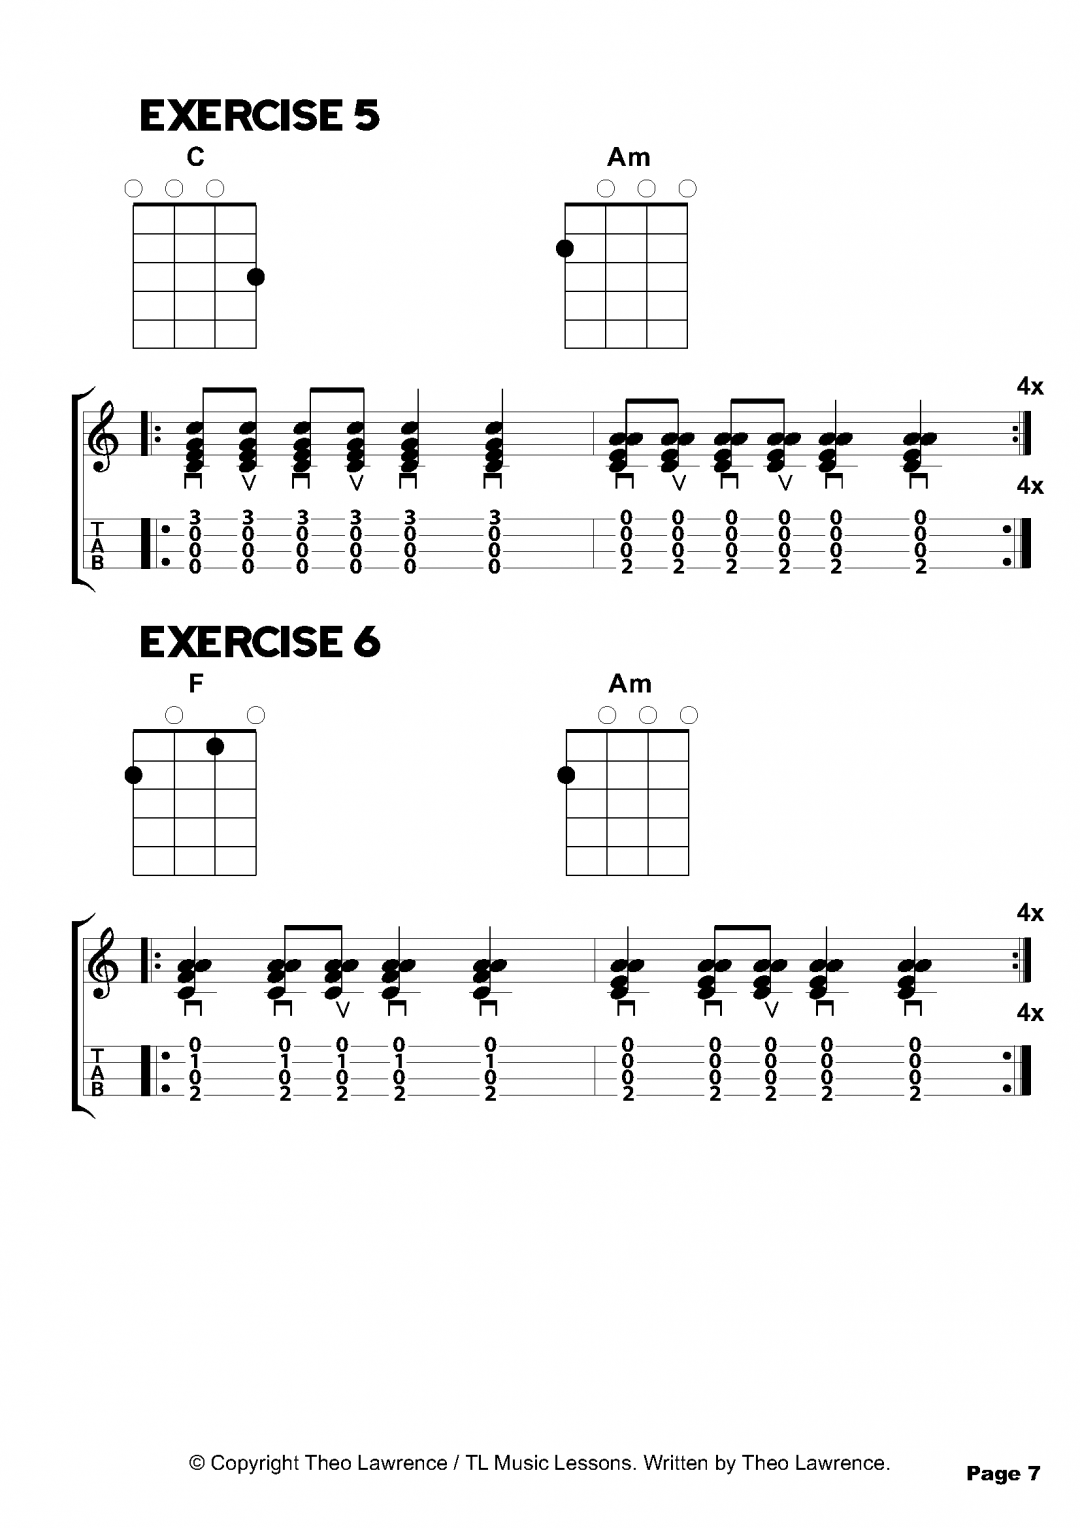 Beginners Ukulele Chord Exercises 5-6 of 50